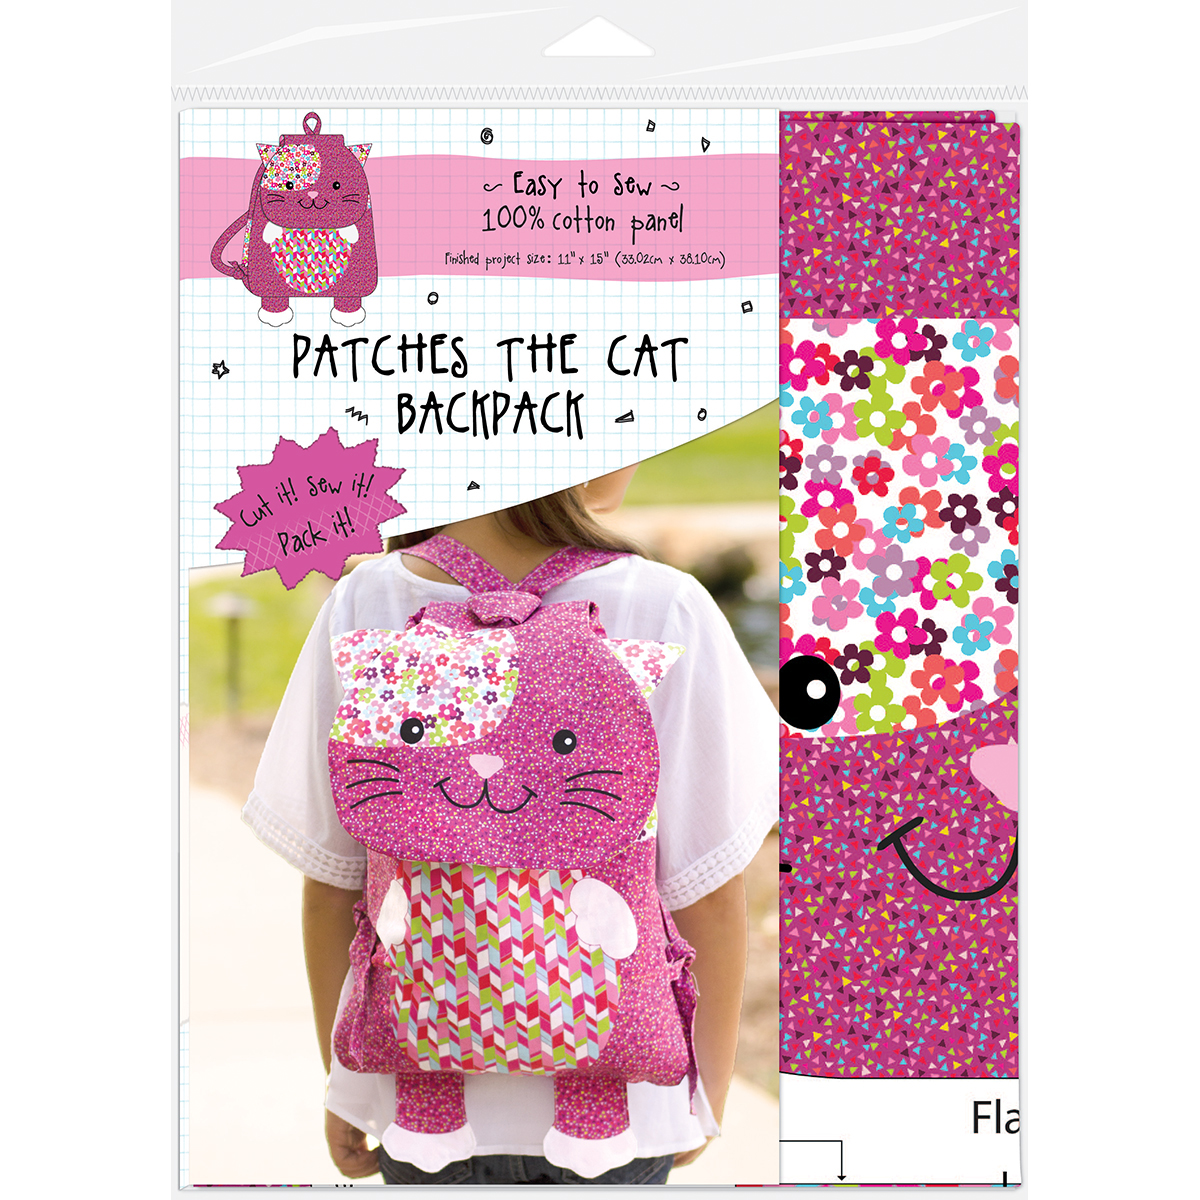 Patches The Cat Animal Backpack On Preprinted Fabric-